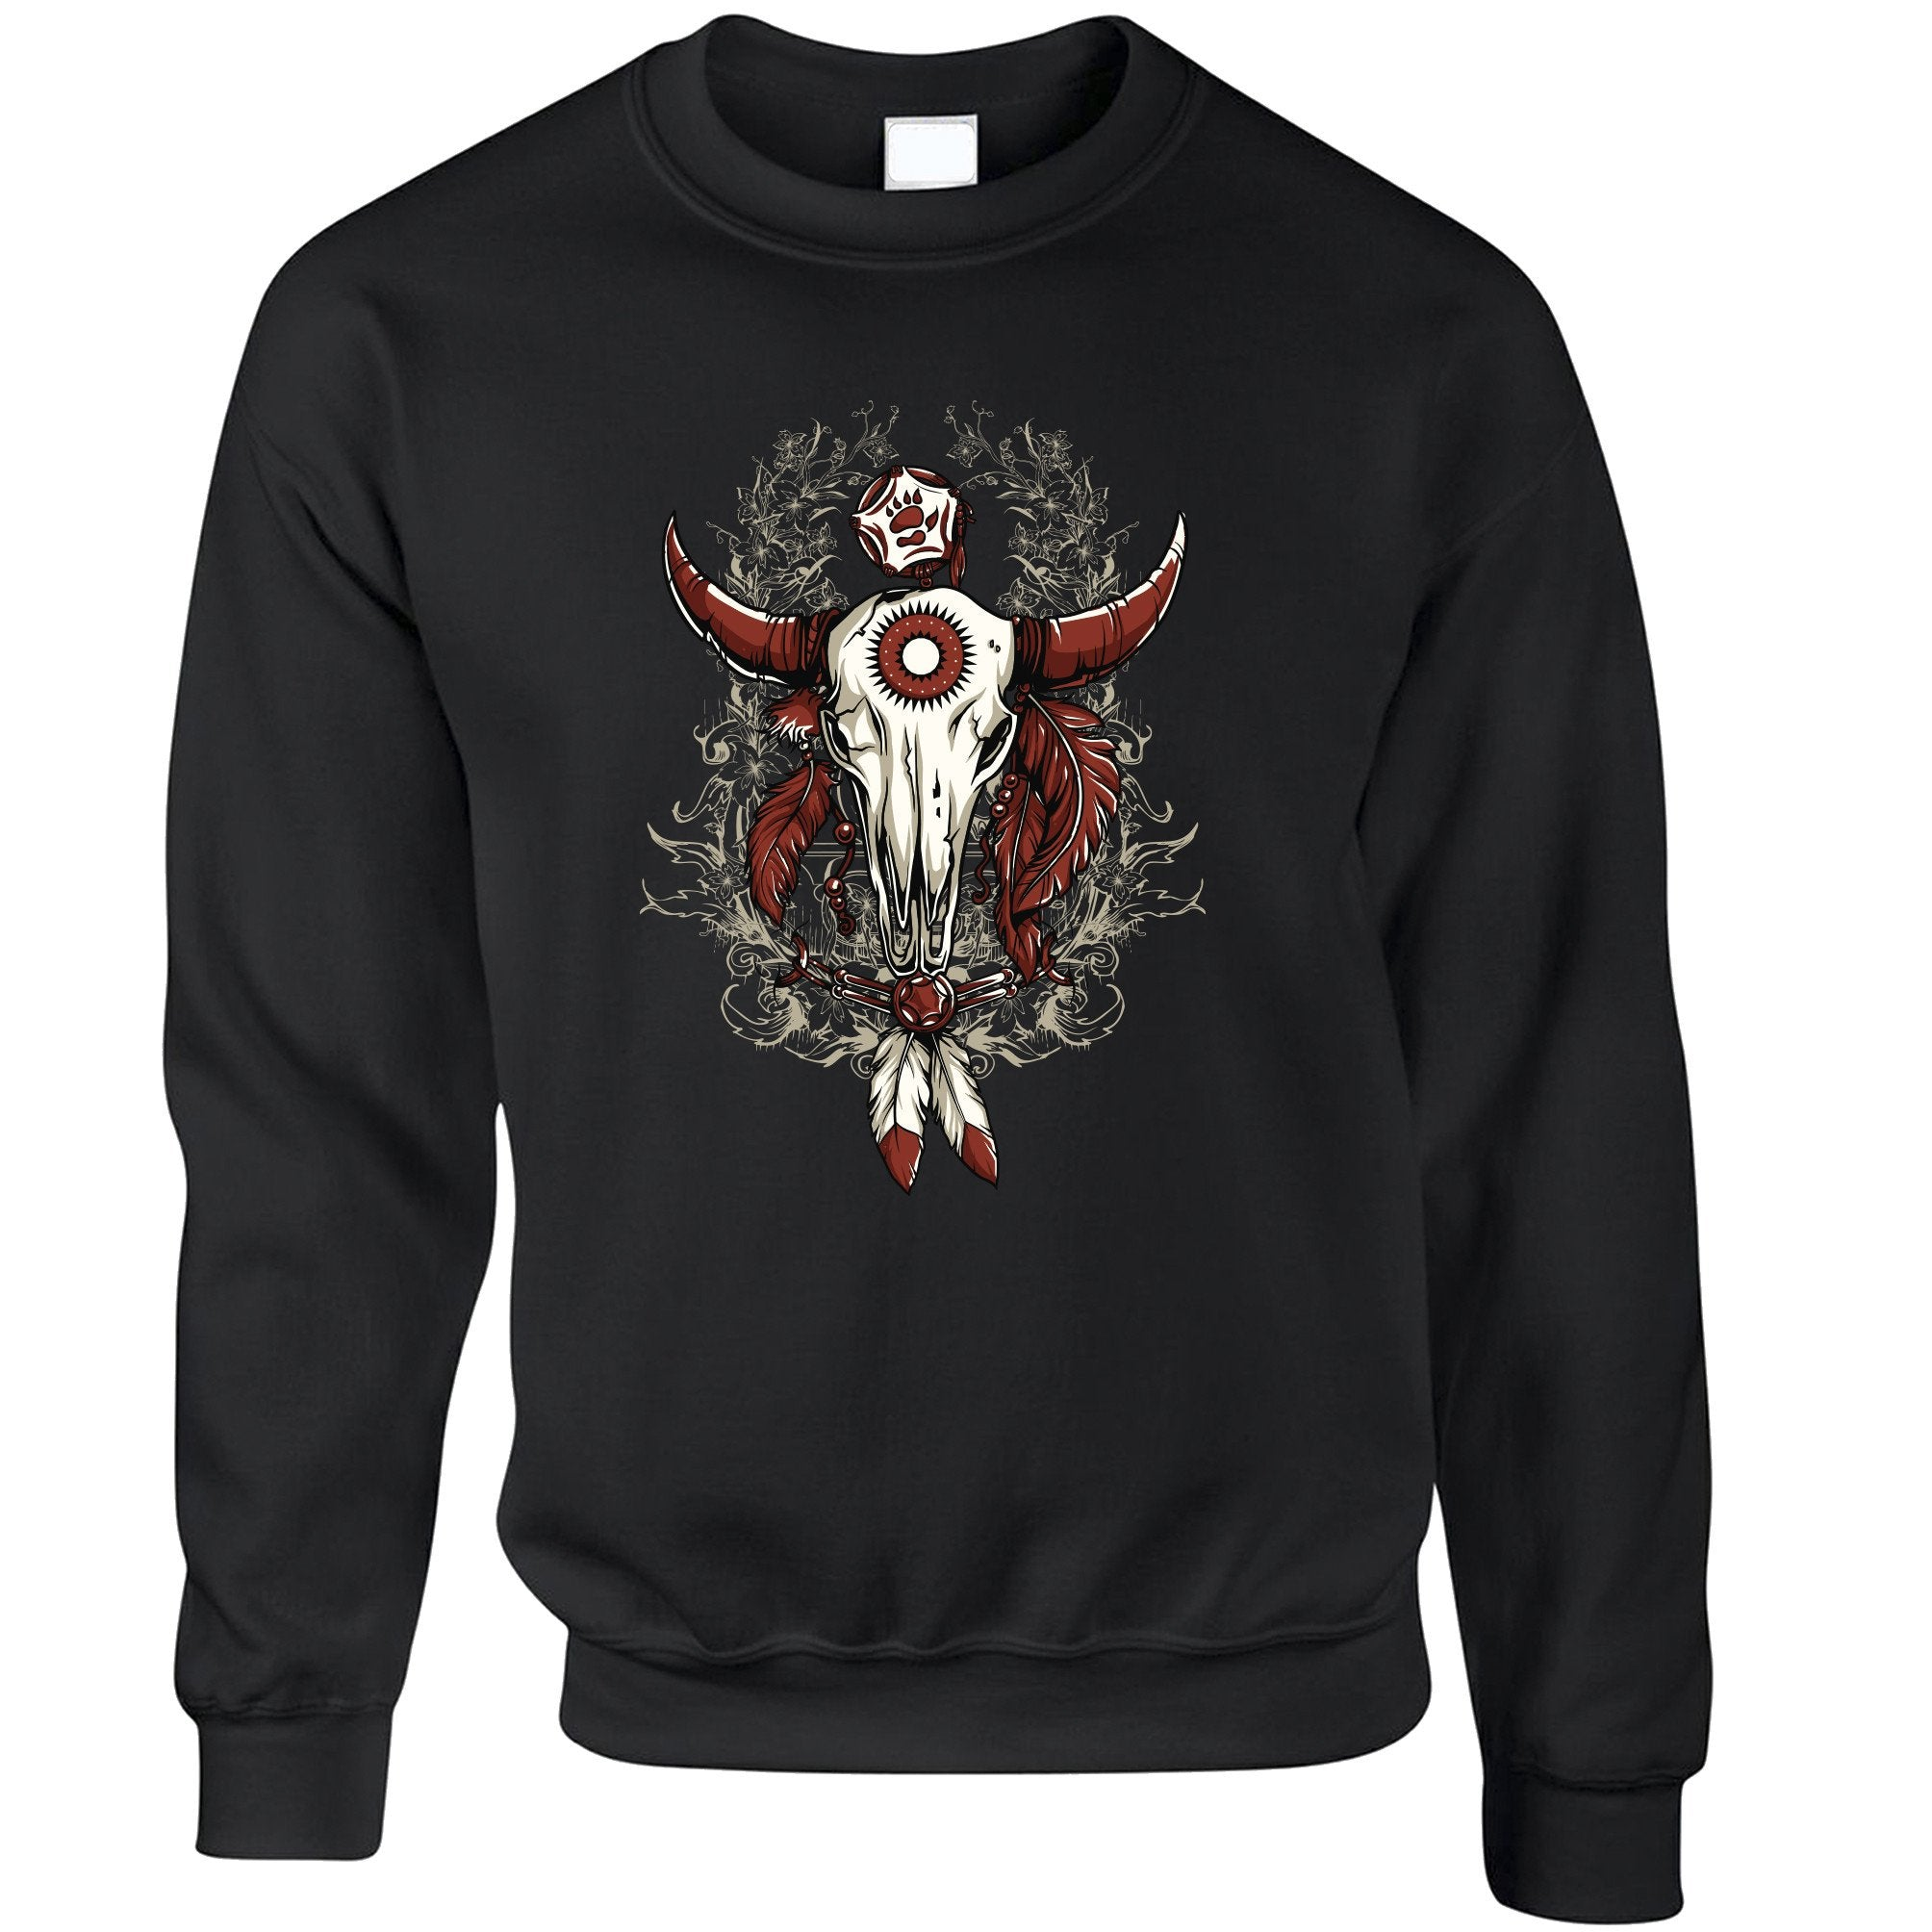 Native American Art Jumper Bull Skull and Feathers Sweatshirt Sweater